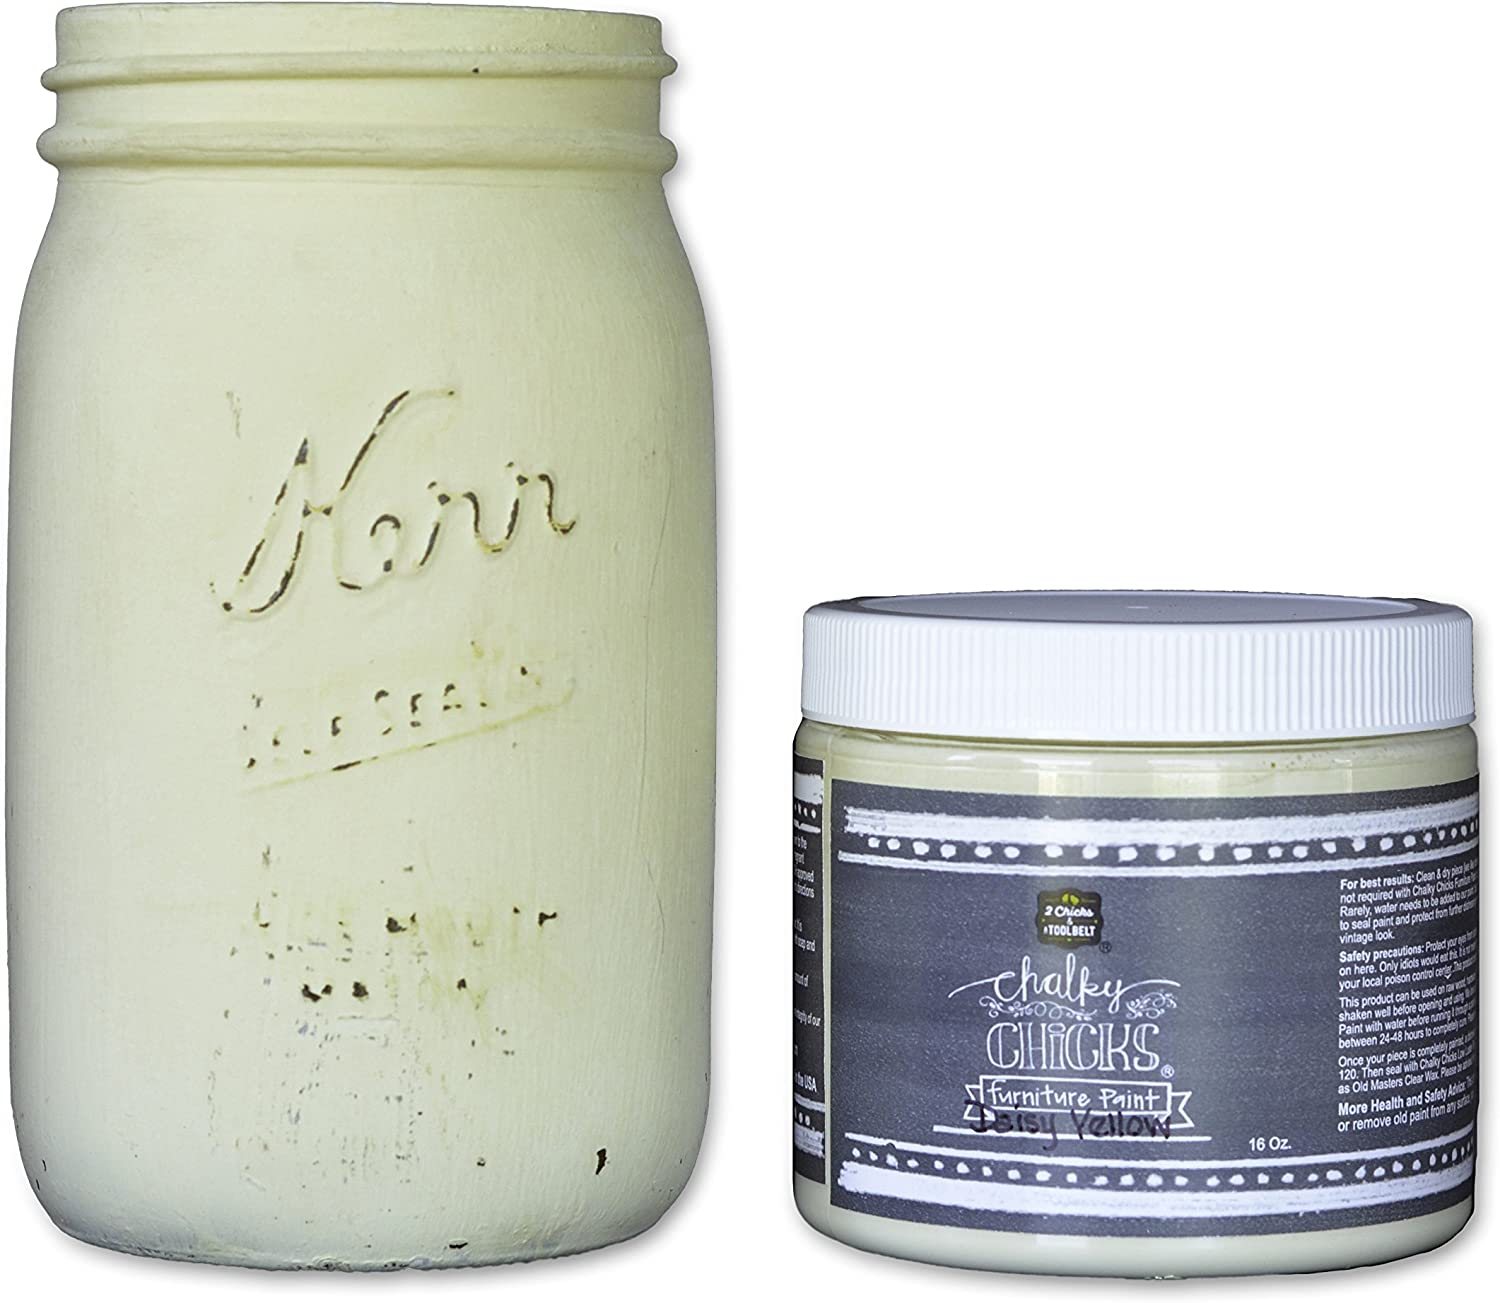 Chalky Chicks | Chalk Finish Paint | Perfect For Furniture, Cabinets, Home Decor, & DIY Craft Projects | 16 oz | Daisy Yellow